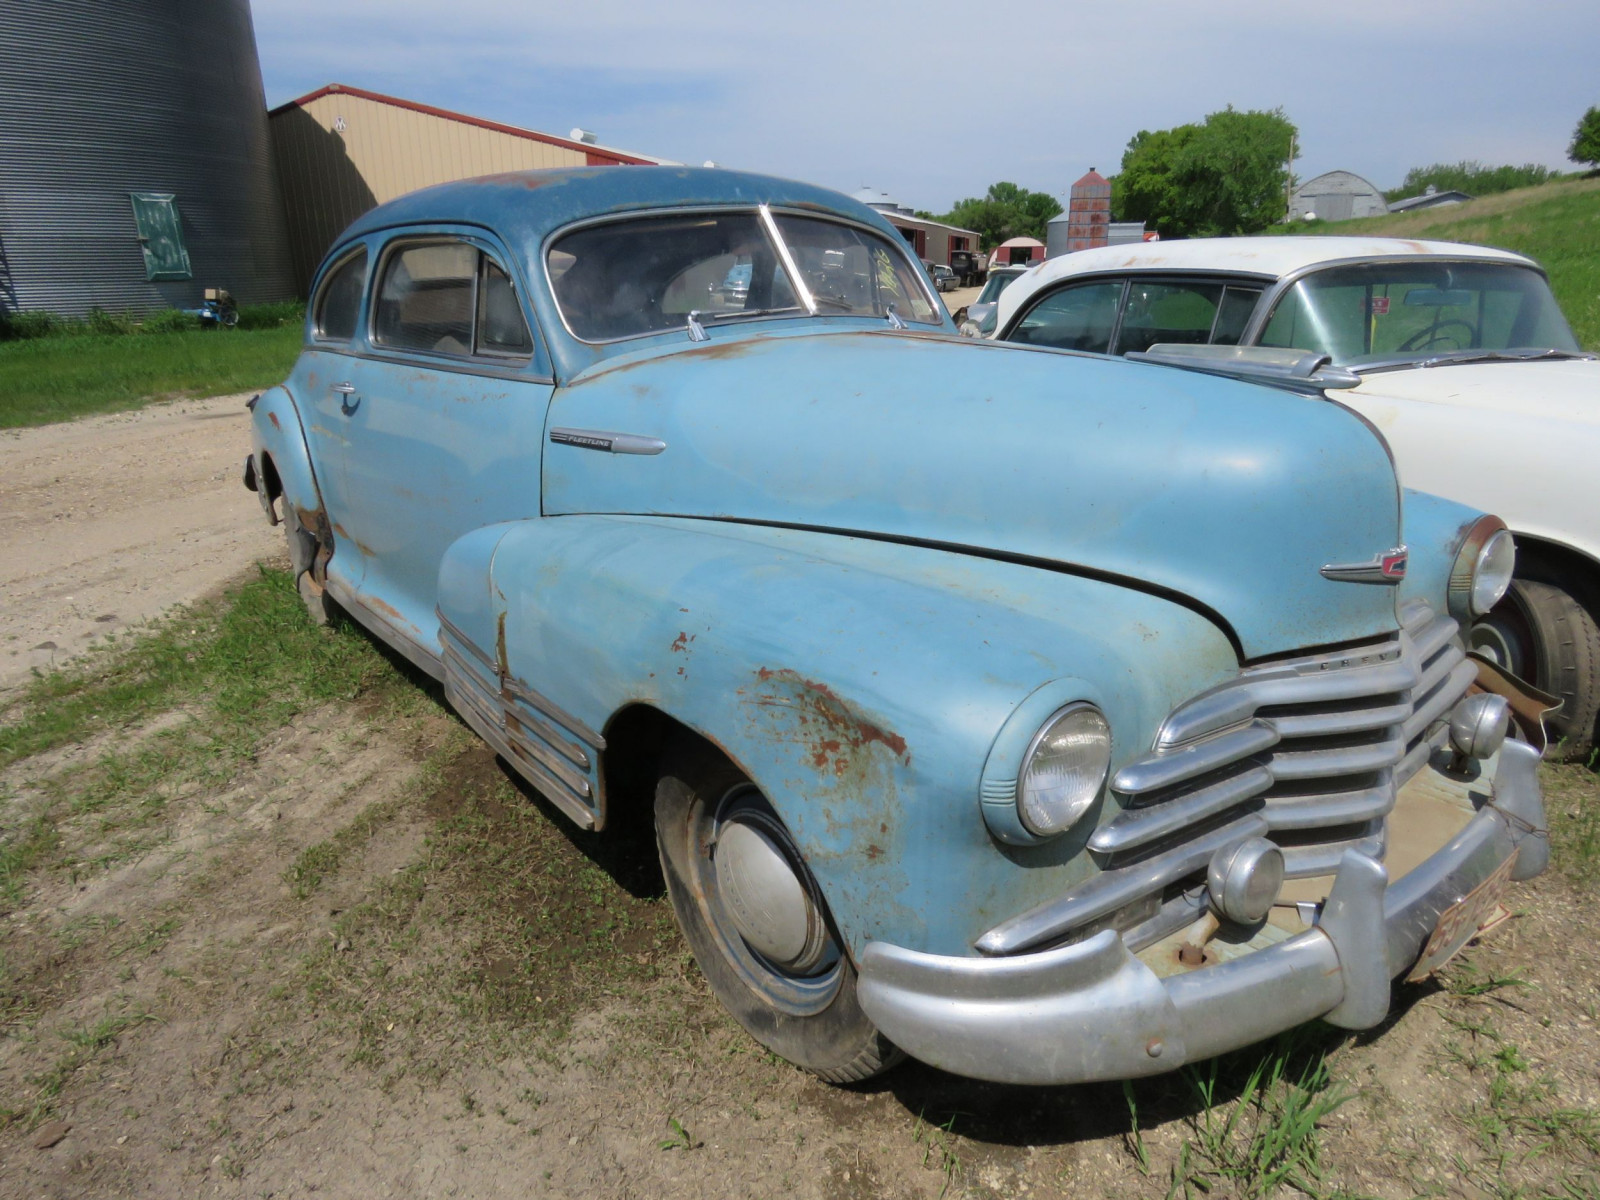 1947 Chevrolet Fleet line 2dr Sedan - Image 3